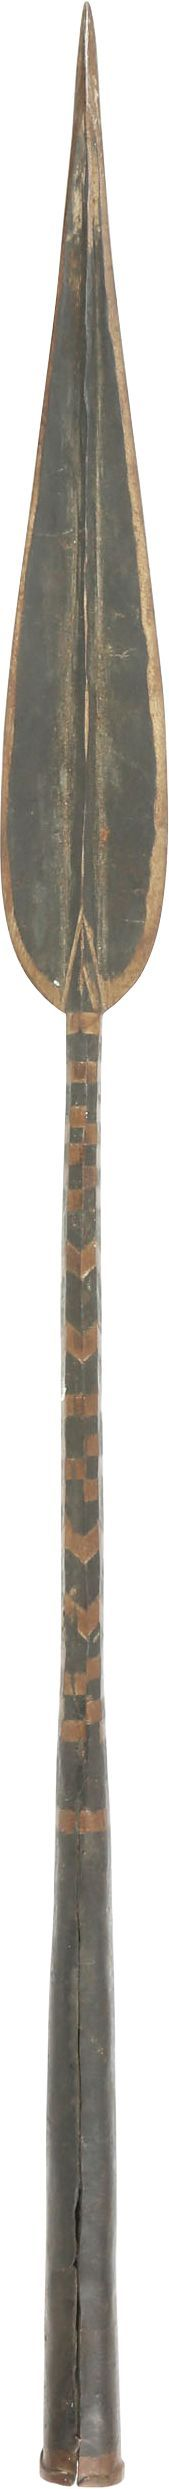 Fine African War Spear Eritrea - Product